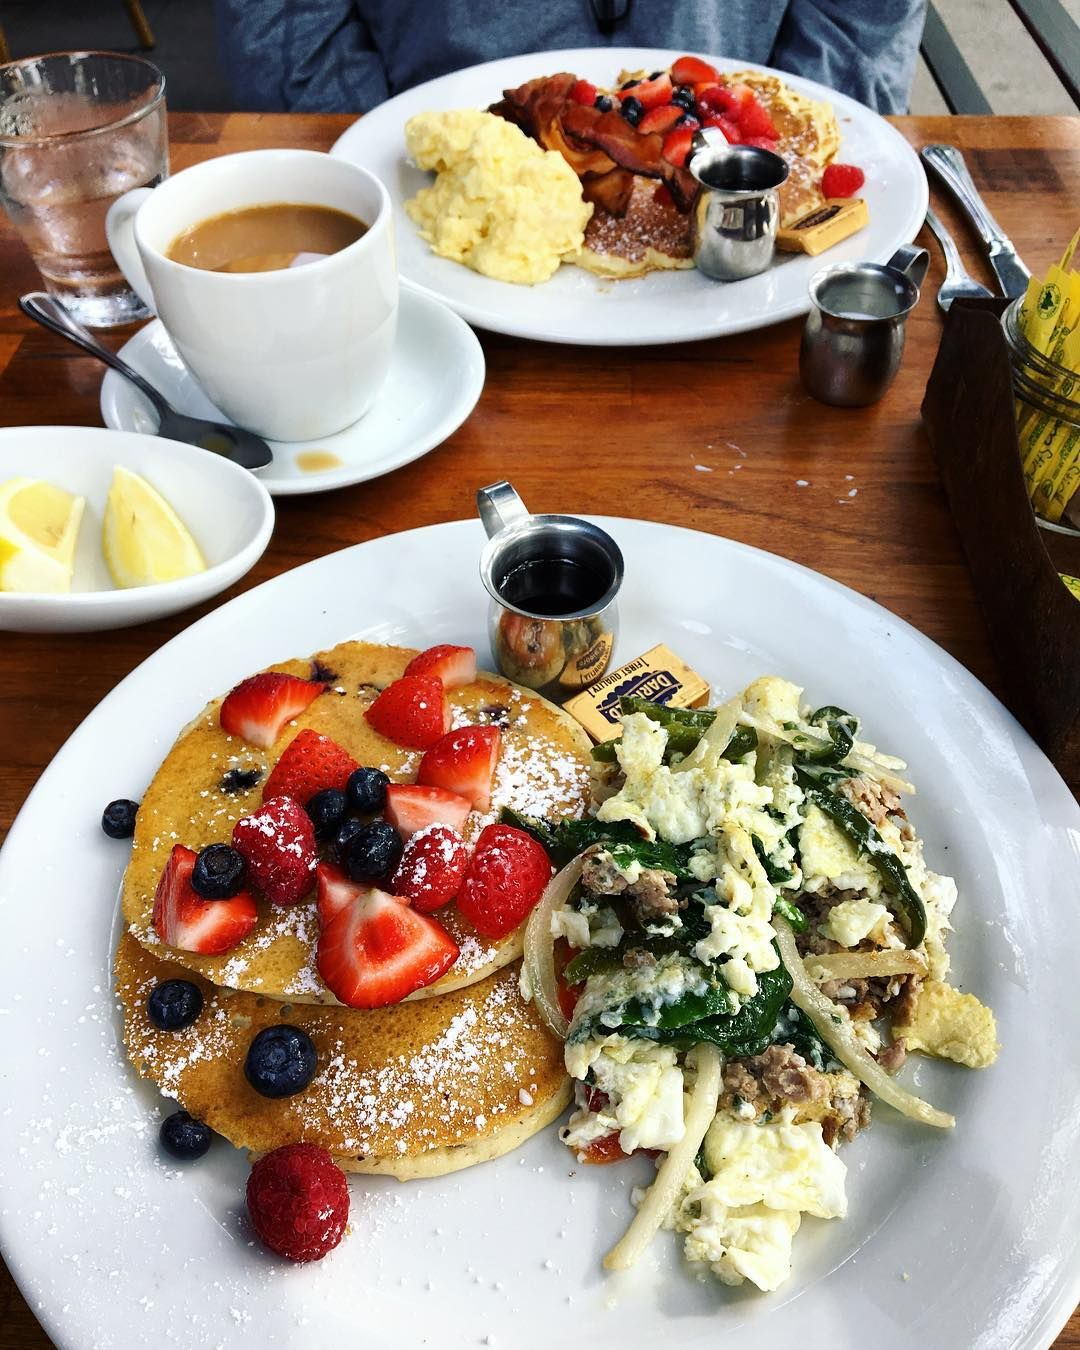 Best Brunch Restaurants In Los Angeles To Eat Brunch Restaurants Brunch Brunch Spots